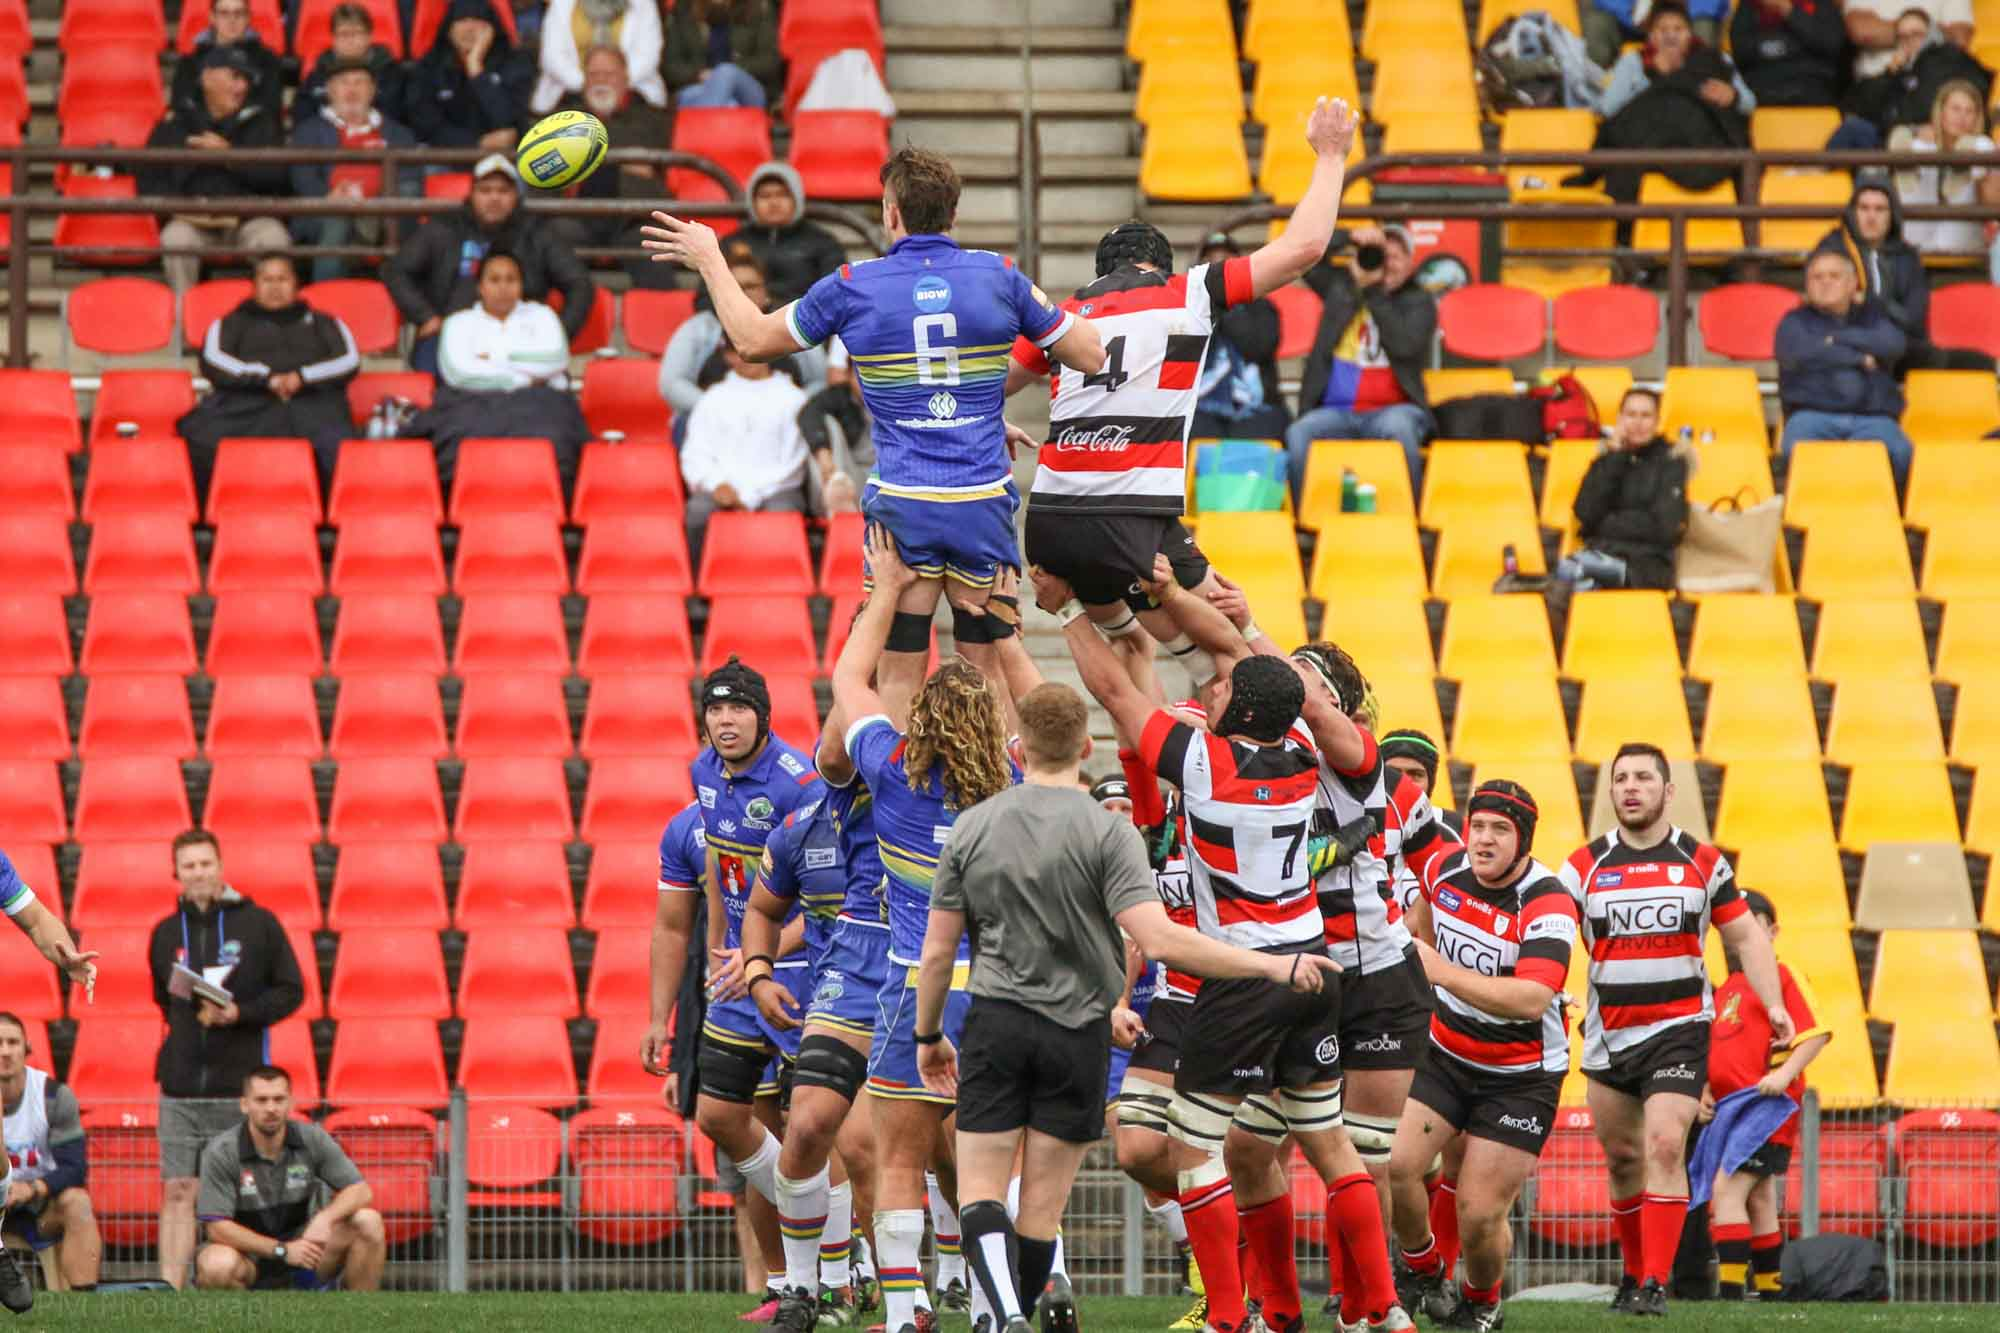 Lachlan Swinton secures the Rays a lineout.